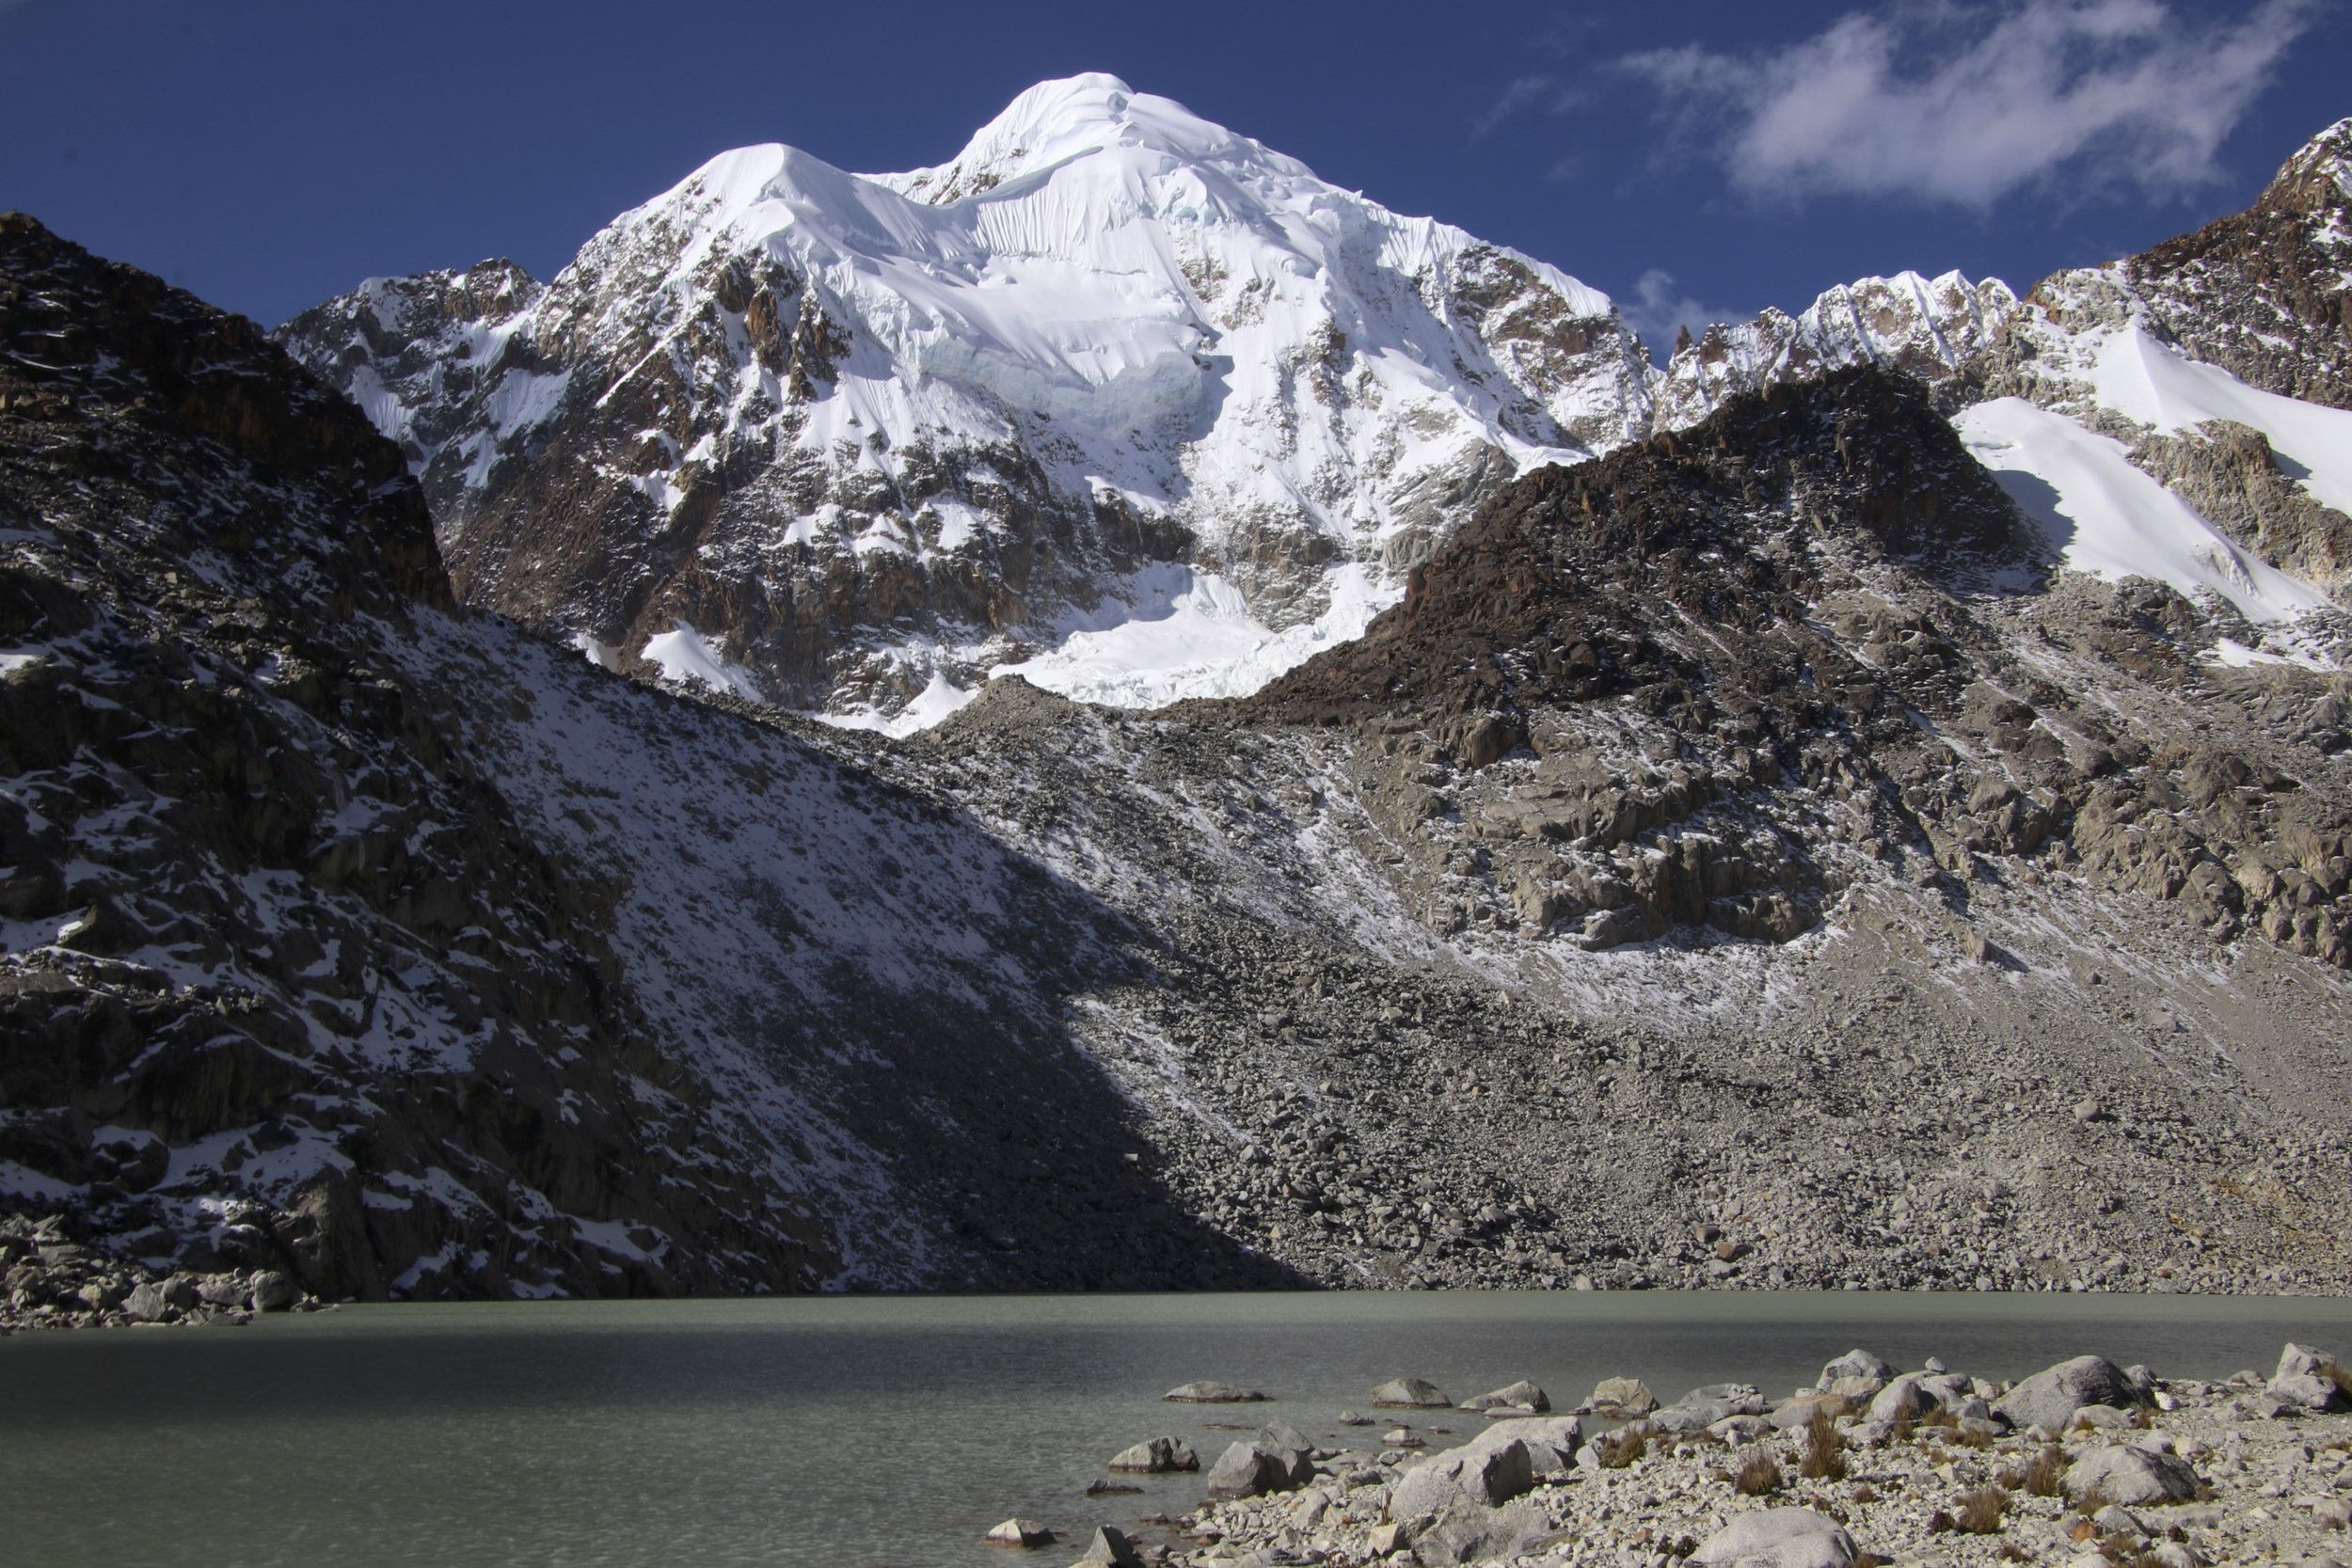 Laguna Glaciar and Illampu. Illampu is the most difficult mountain to climb in the entire range. The standard climbing route is on the opposite side of the mountain.